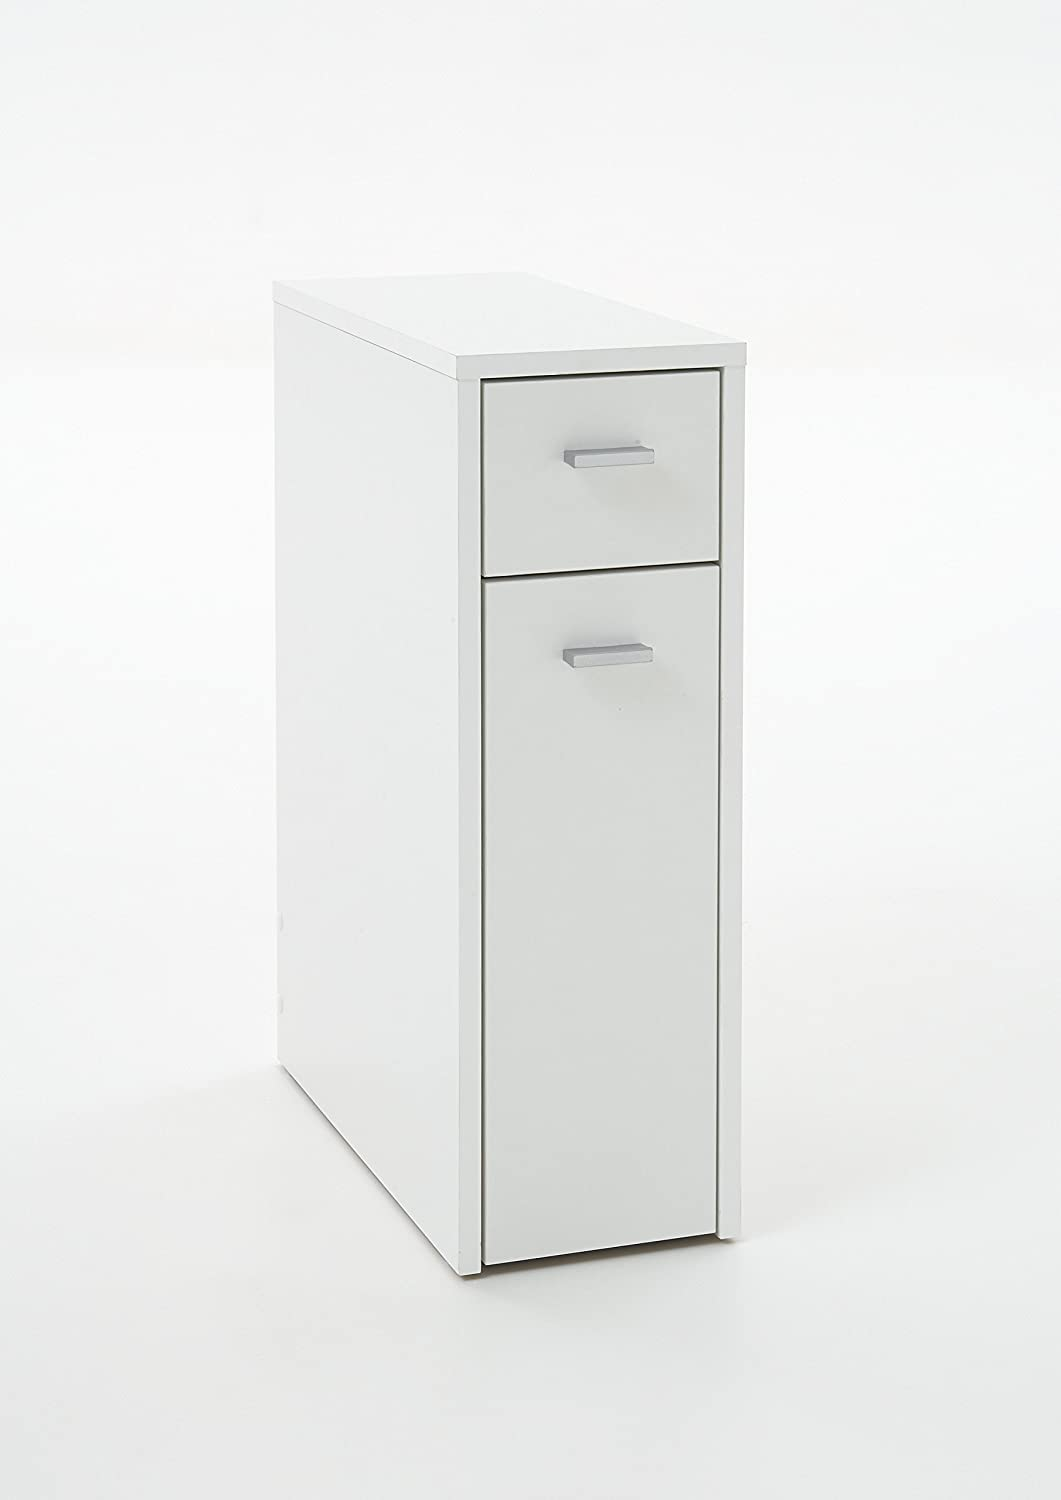 SALANCA Premium Bathroom/Kitchen Storage Cupboard Cabinet Unit in White Small Drawer u0026 Large Pull-Out Storage Cupboard Amazon.co.uk Kitchen u0026 Home : slimline bathroom storage  - Aquiesqueretaro.Com